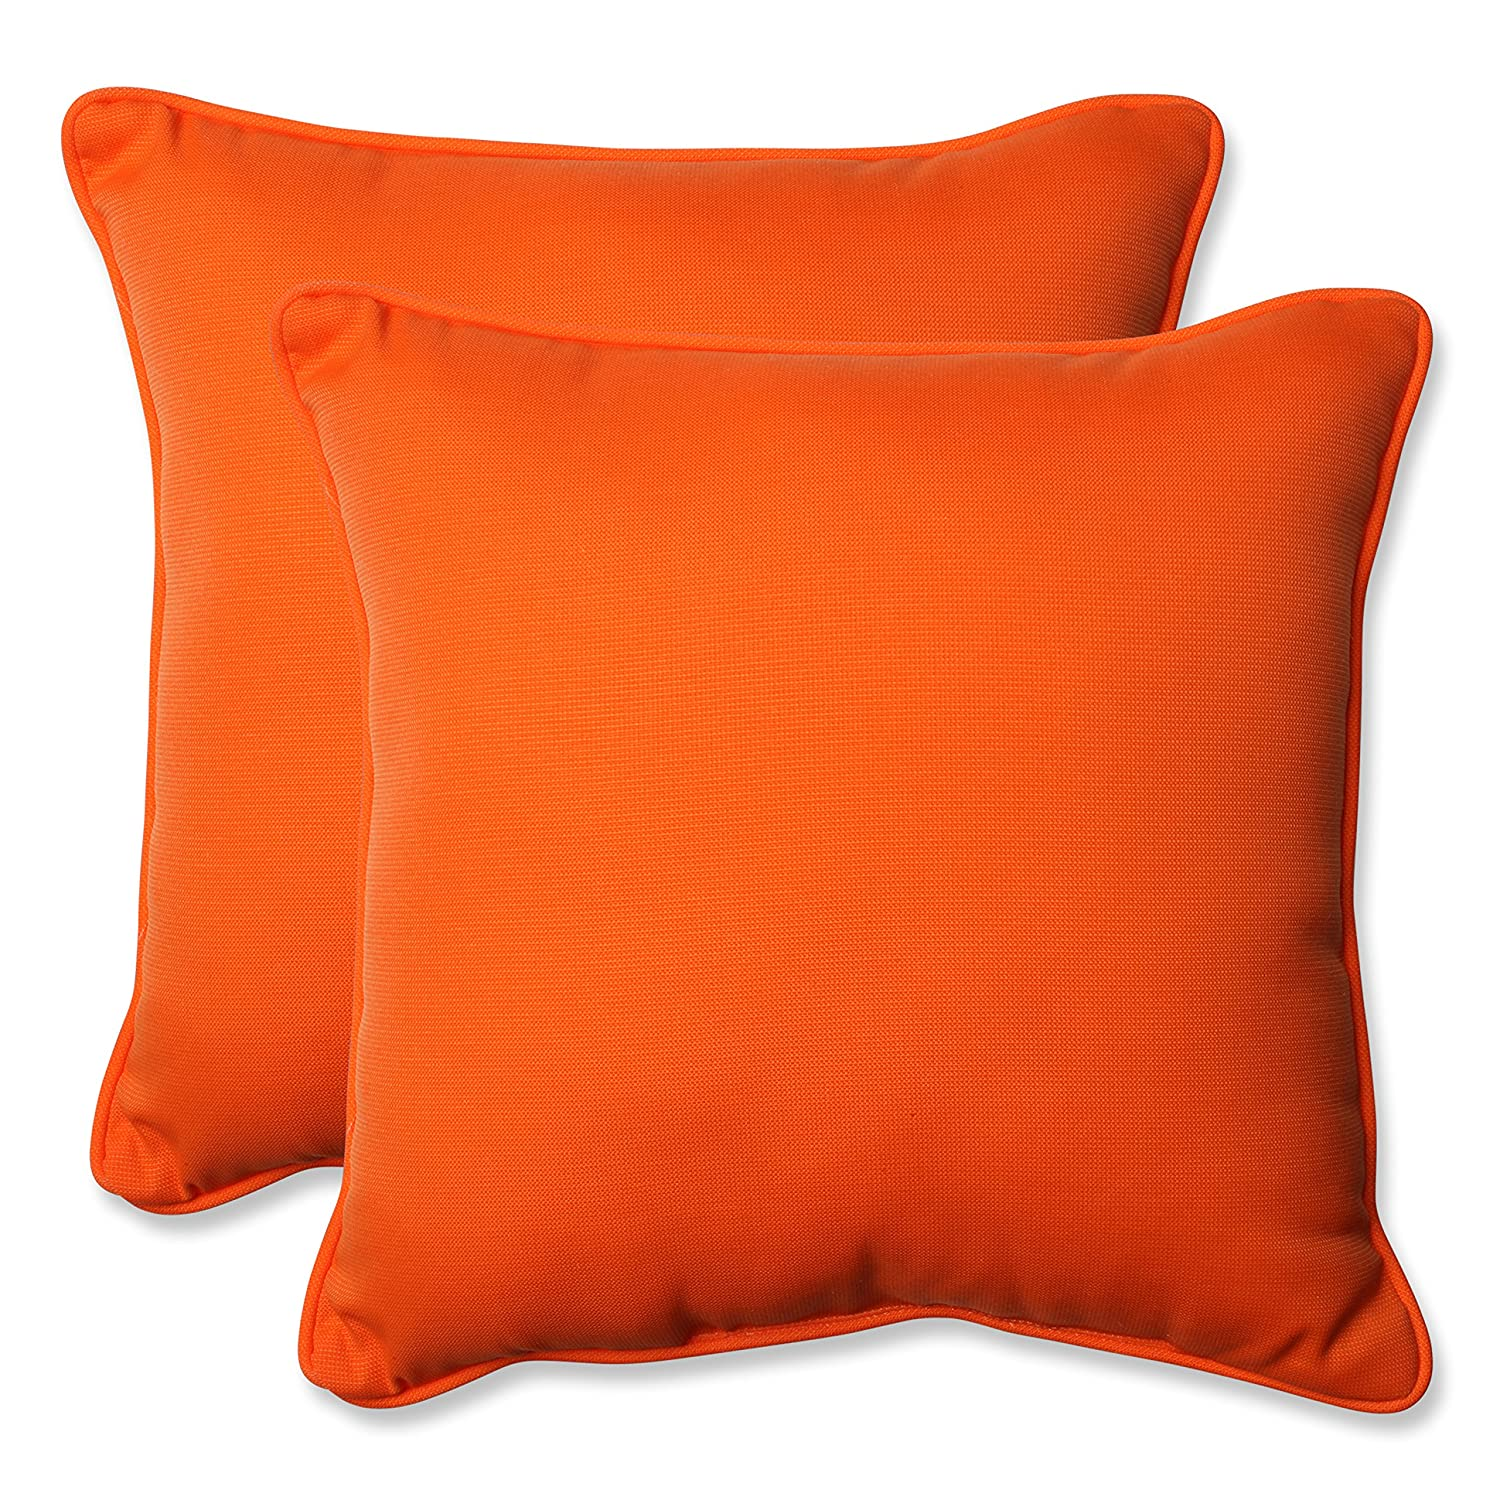 amazoncom pillow perfect sundeck corded throw pillow 185inch orange set of 2 home u0026 kitchen